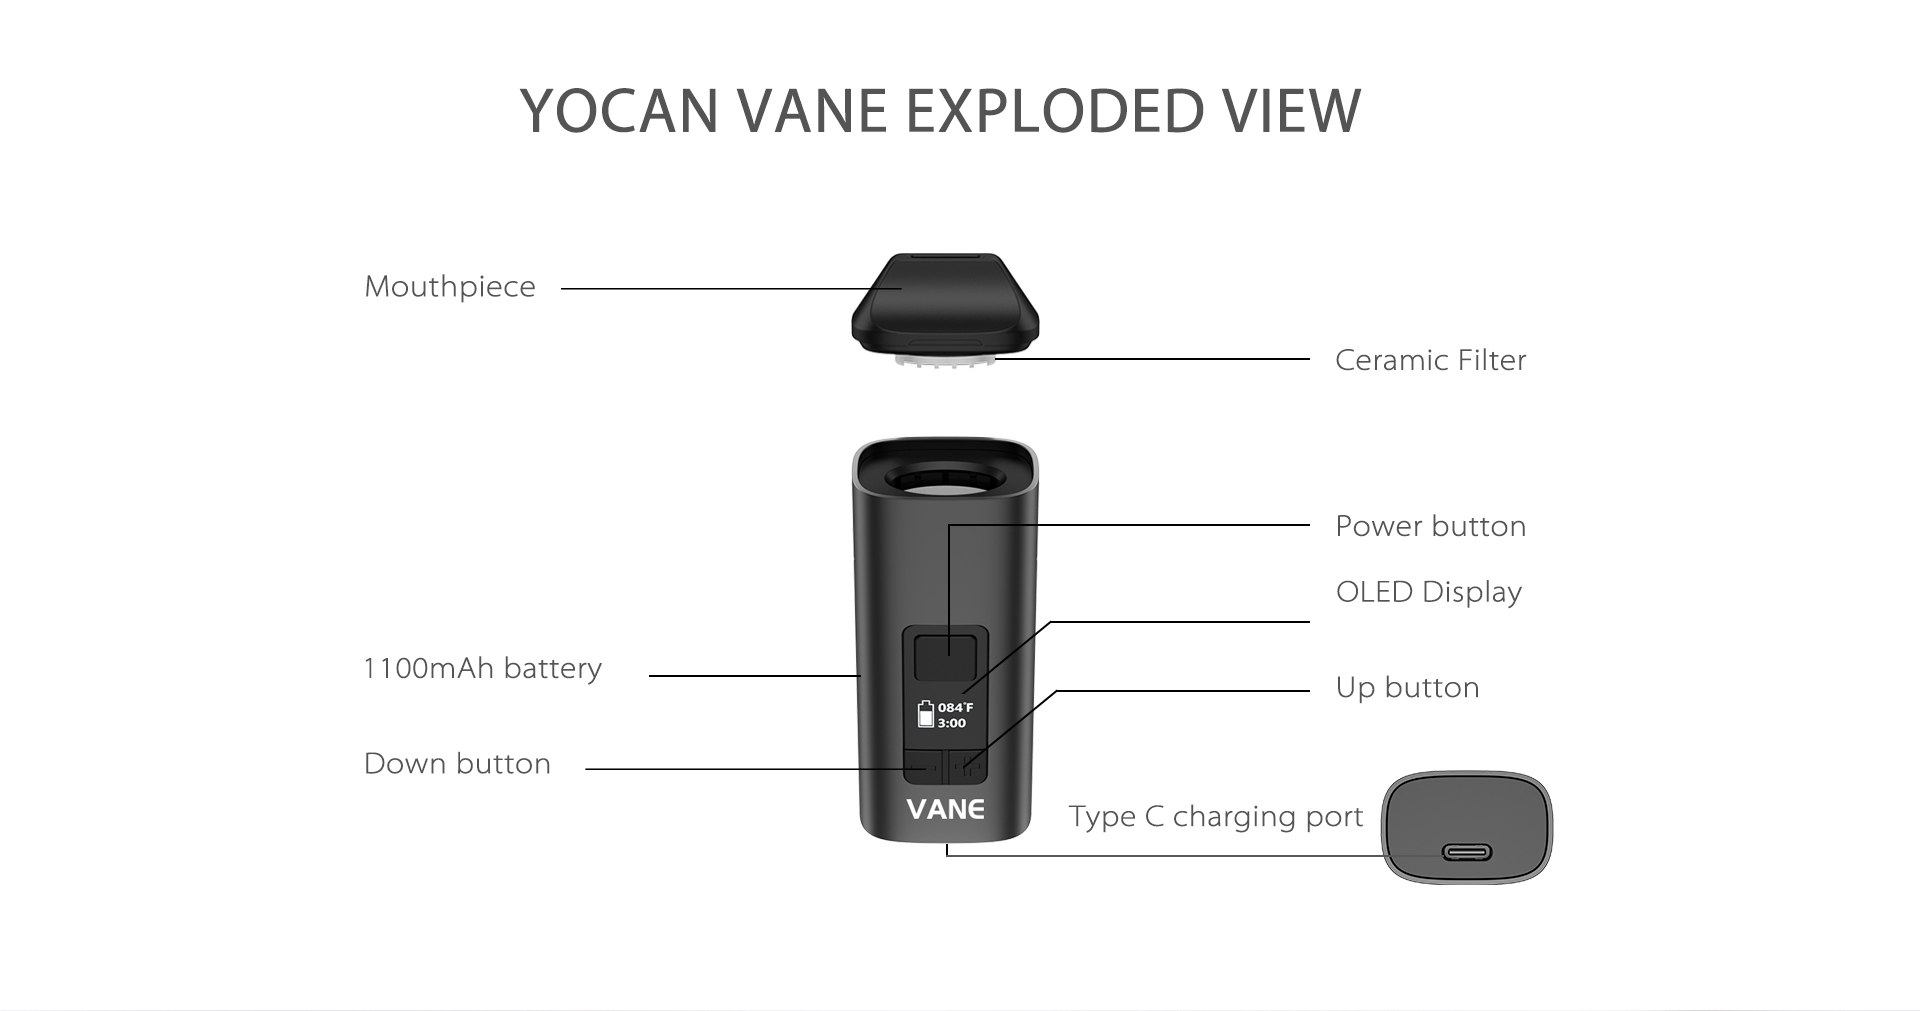 Yocan Vane Dry Vaporizer exploded view.